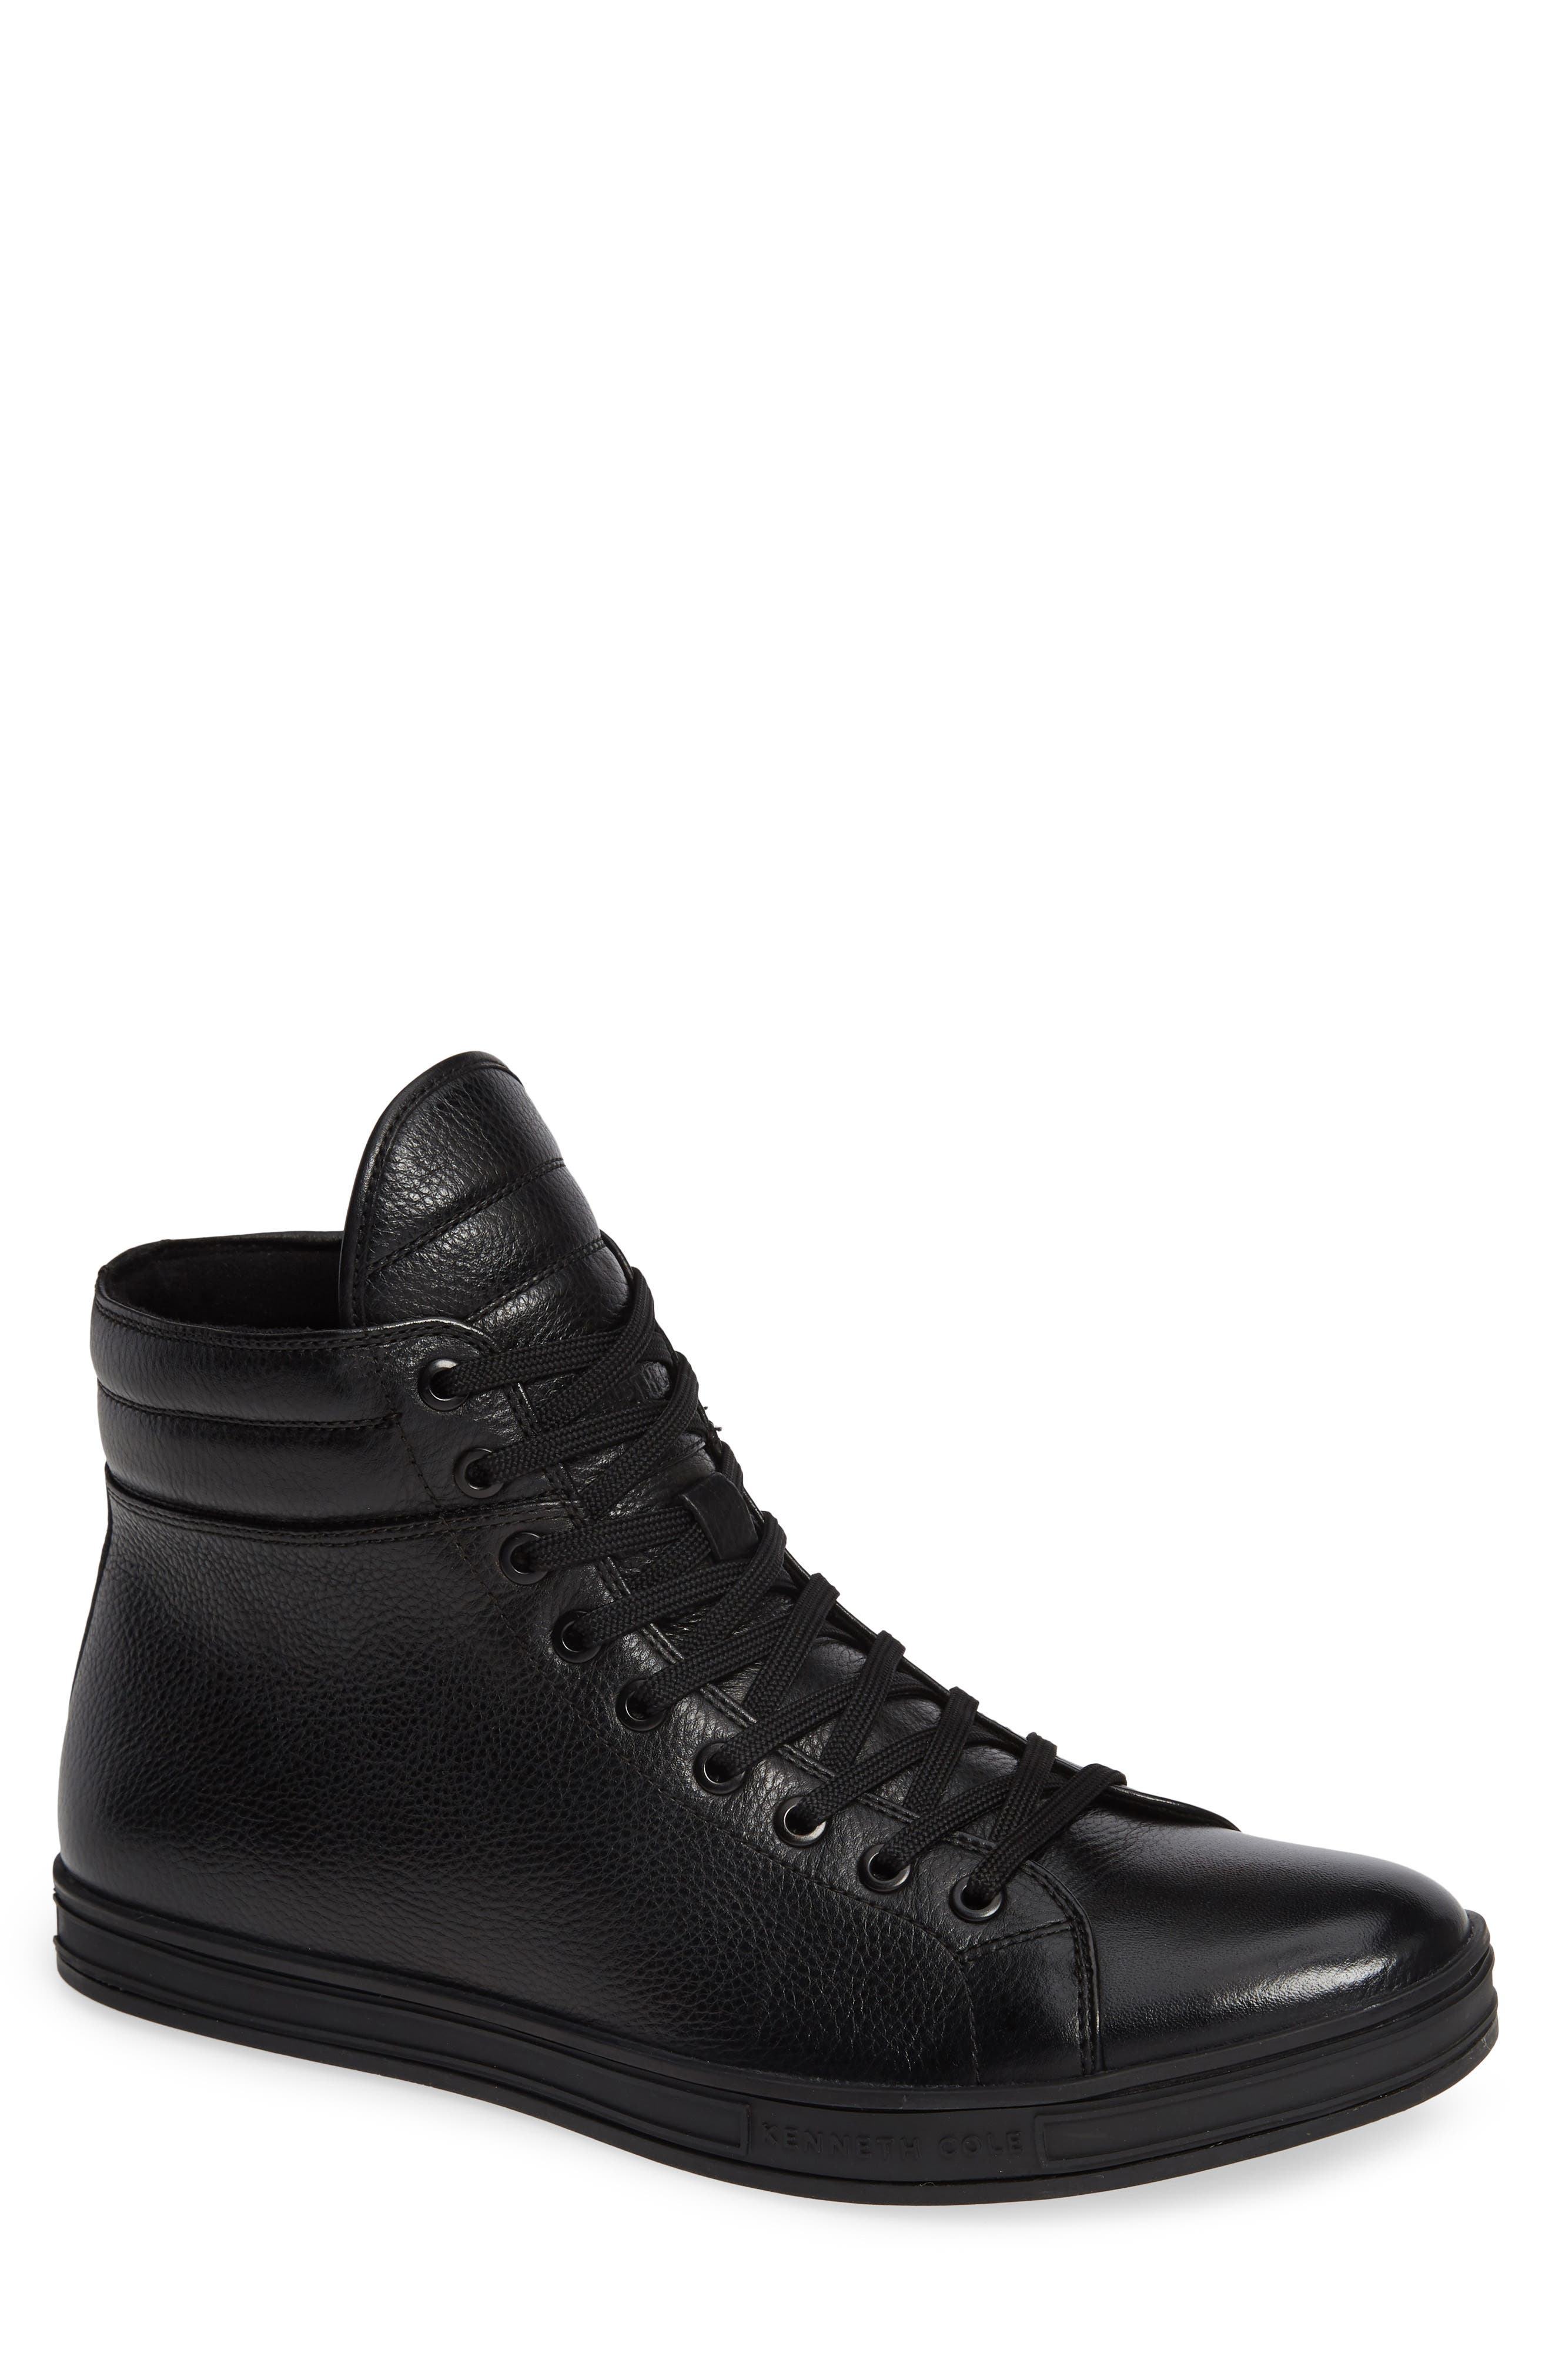 Brand F Sneaker,                             Main thumbnail 1, color,                             BLACK LEATHER